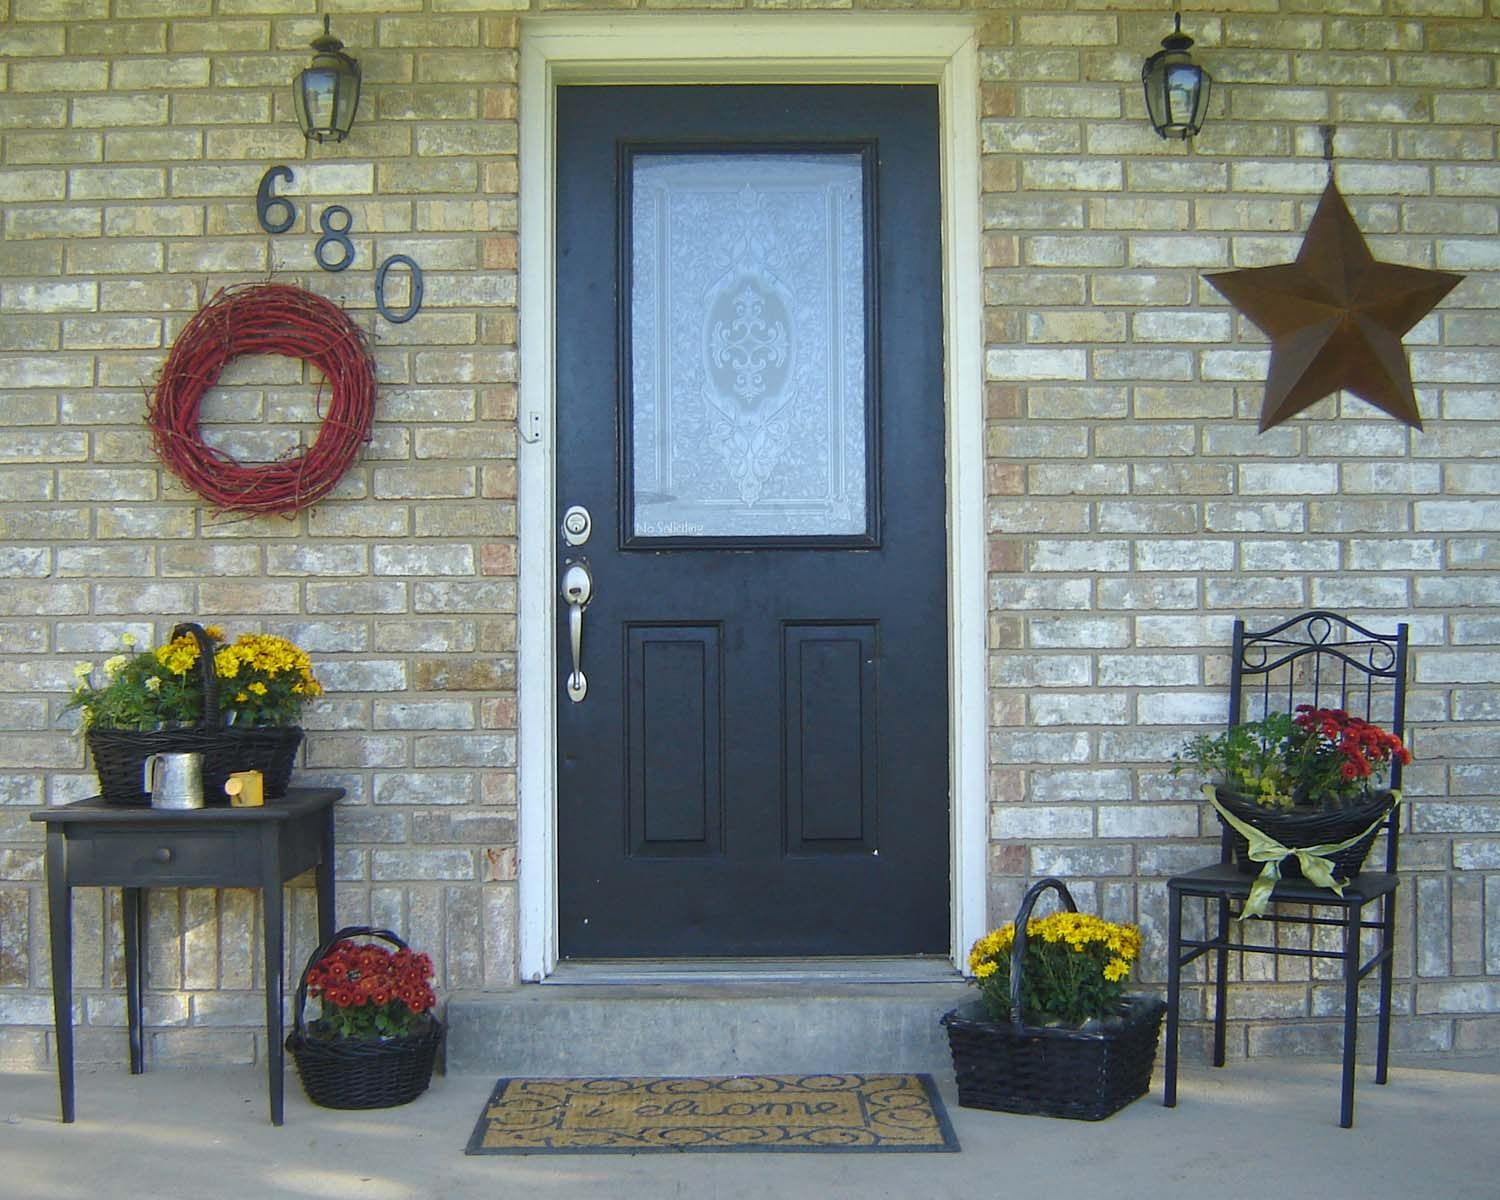 Porch decorating ideas home updates pinterest porch Beautiful fall front porches